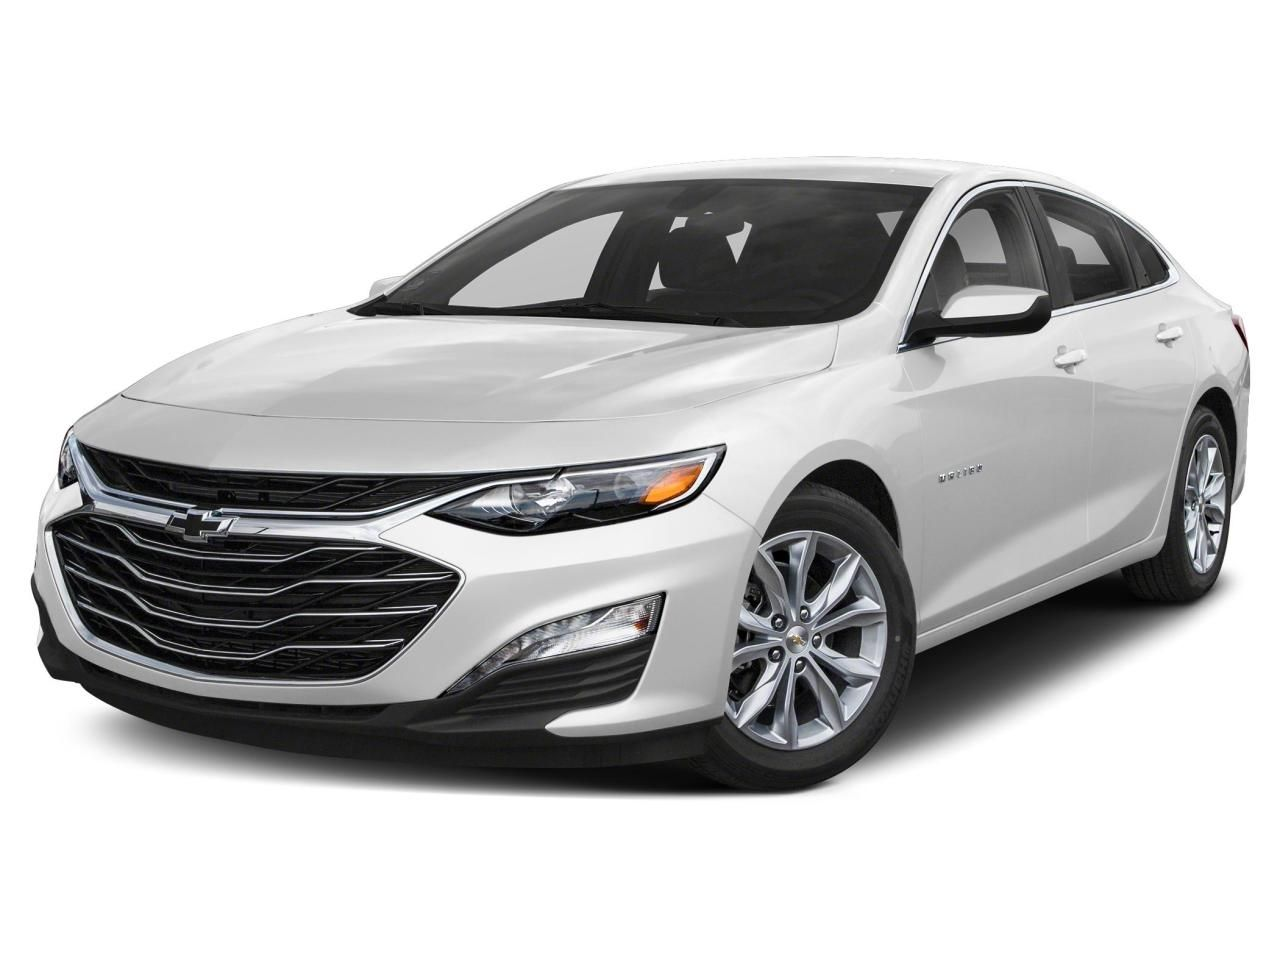 13 Great 2020 Chevy Malibu Pictures In 2020 Chevrolet Malibu